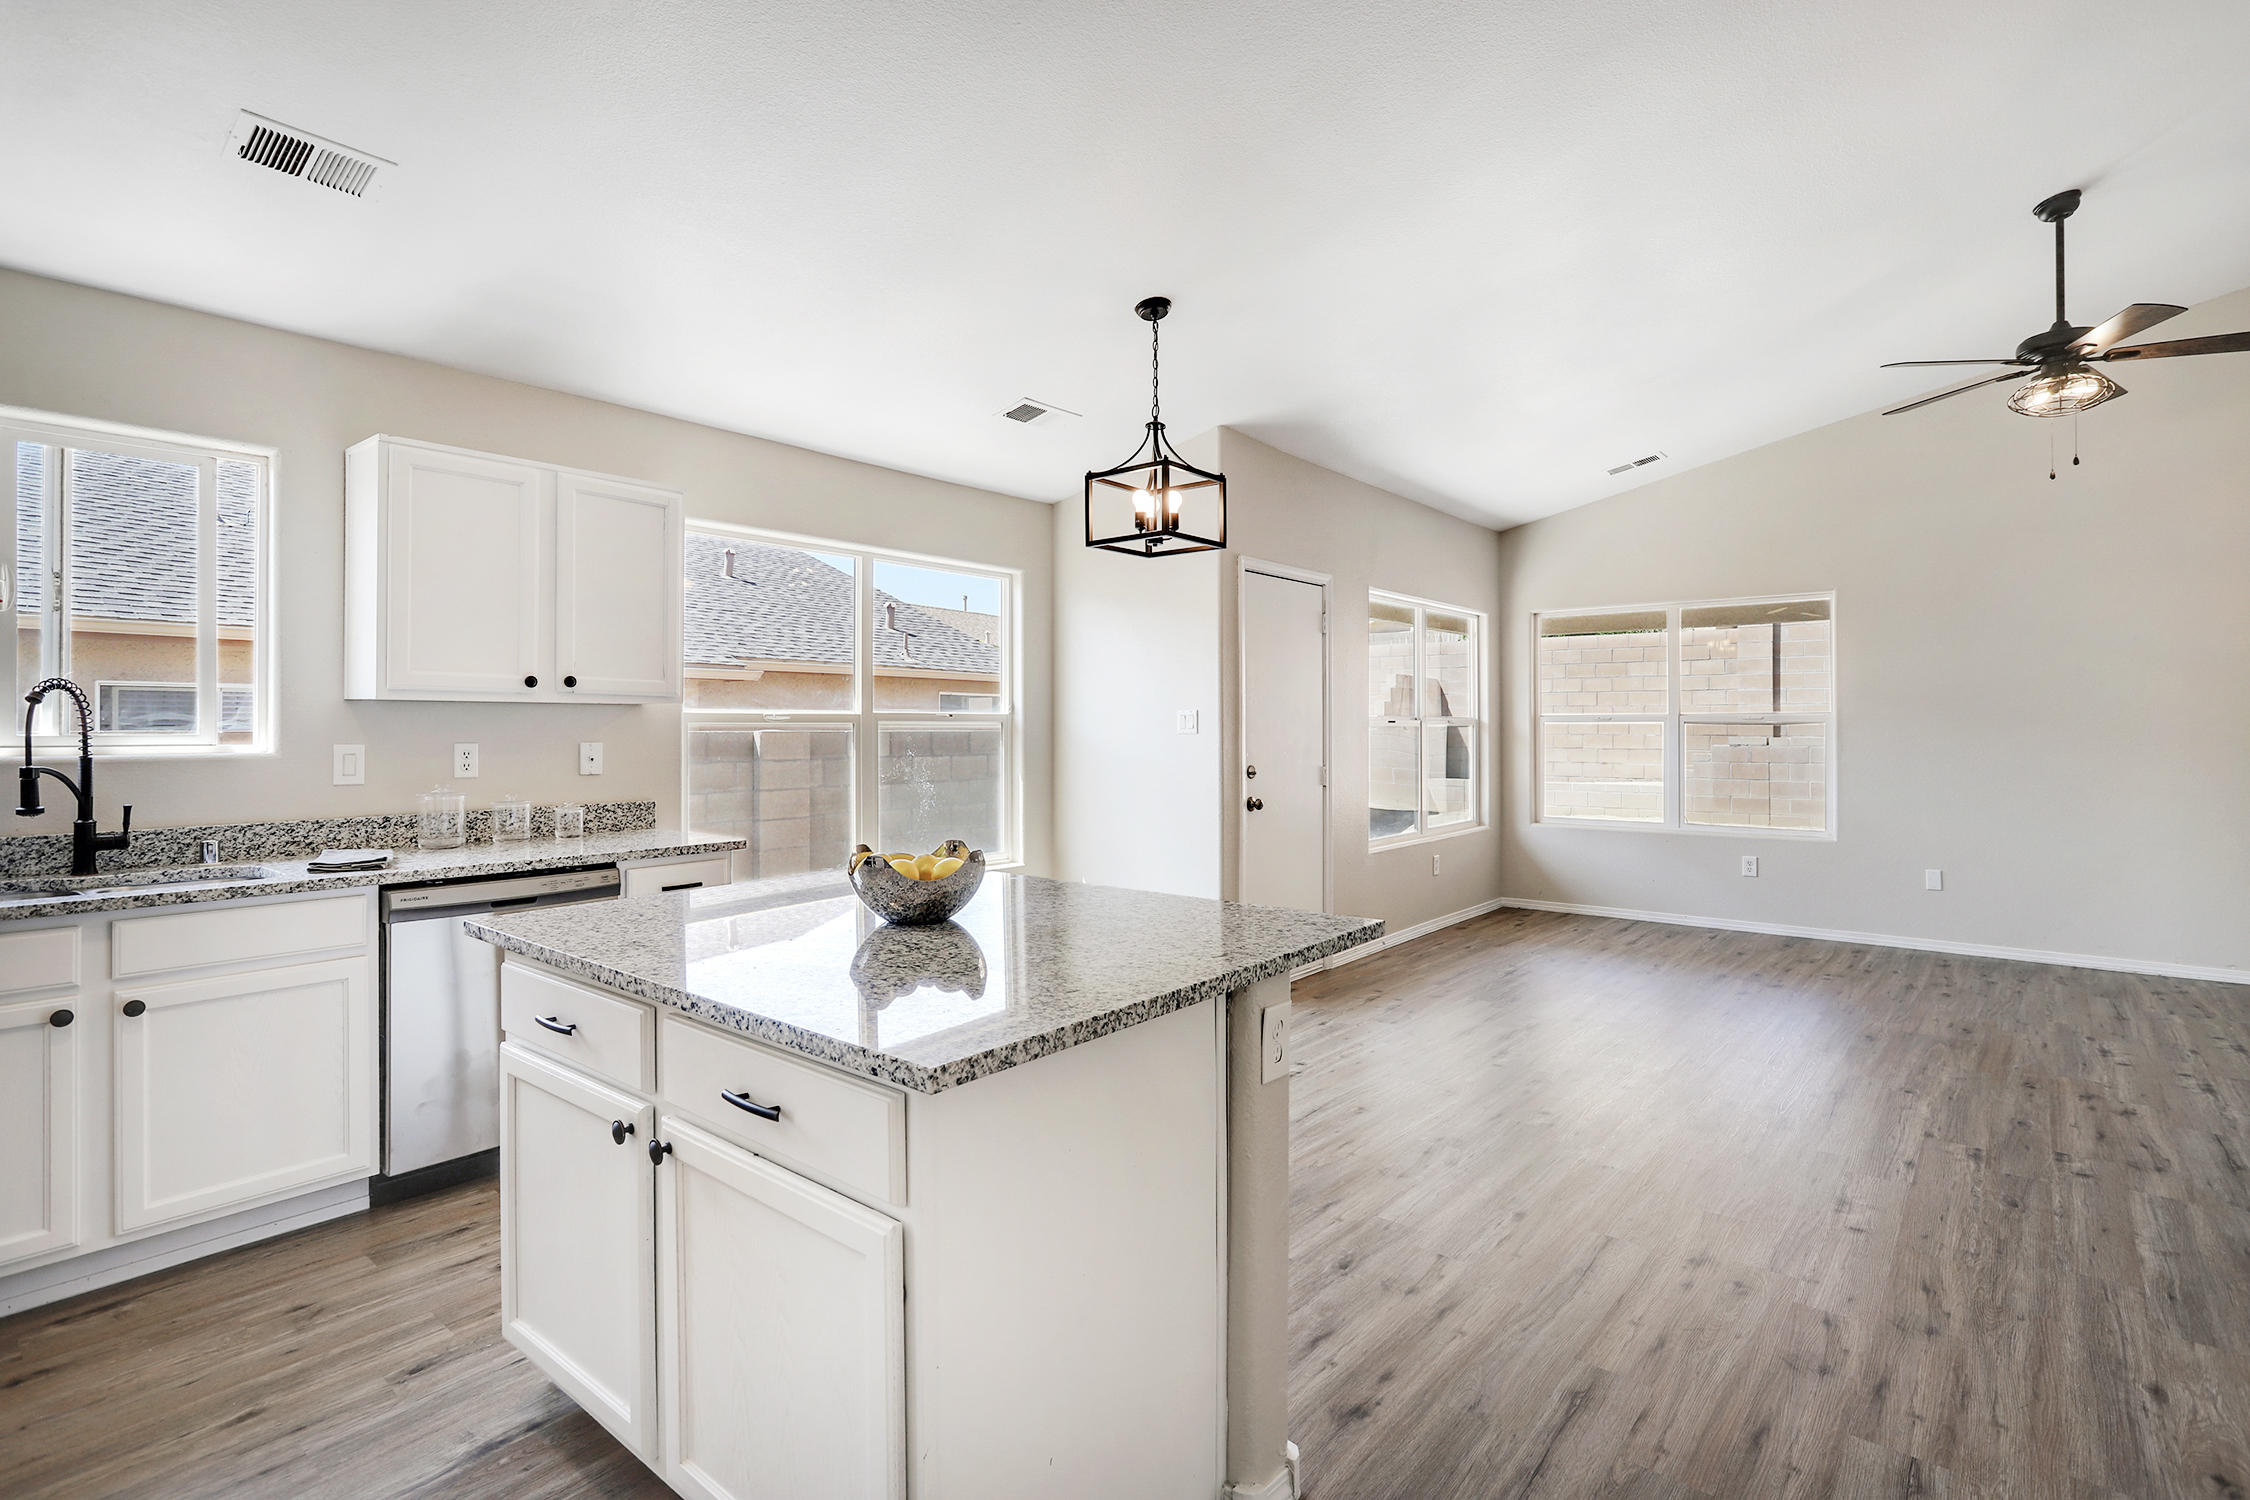 Wonderfully updated home in gated subdivision this one features new appliances, paint and flooring.  Move in ready for the new owner to add any final touches to make it your own.  Schedule a showing today.